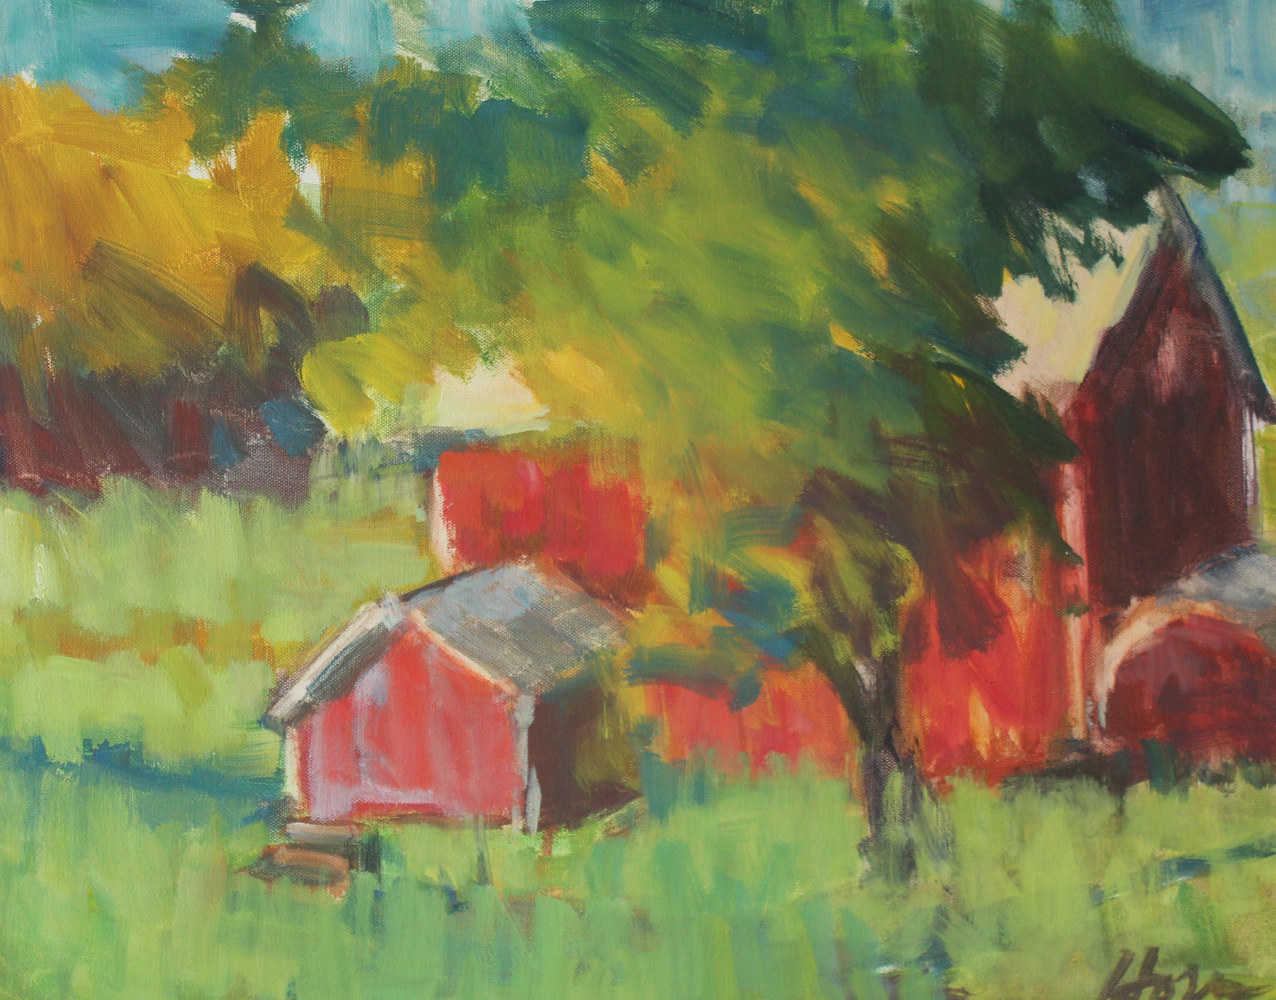 "Carol's Barn, oil on canvas, 16"" x 20"" by Susan Horn"